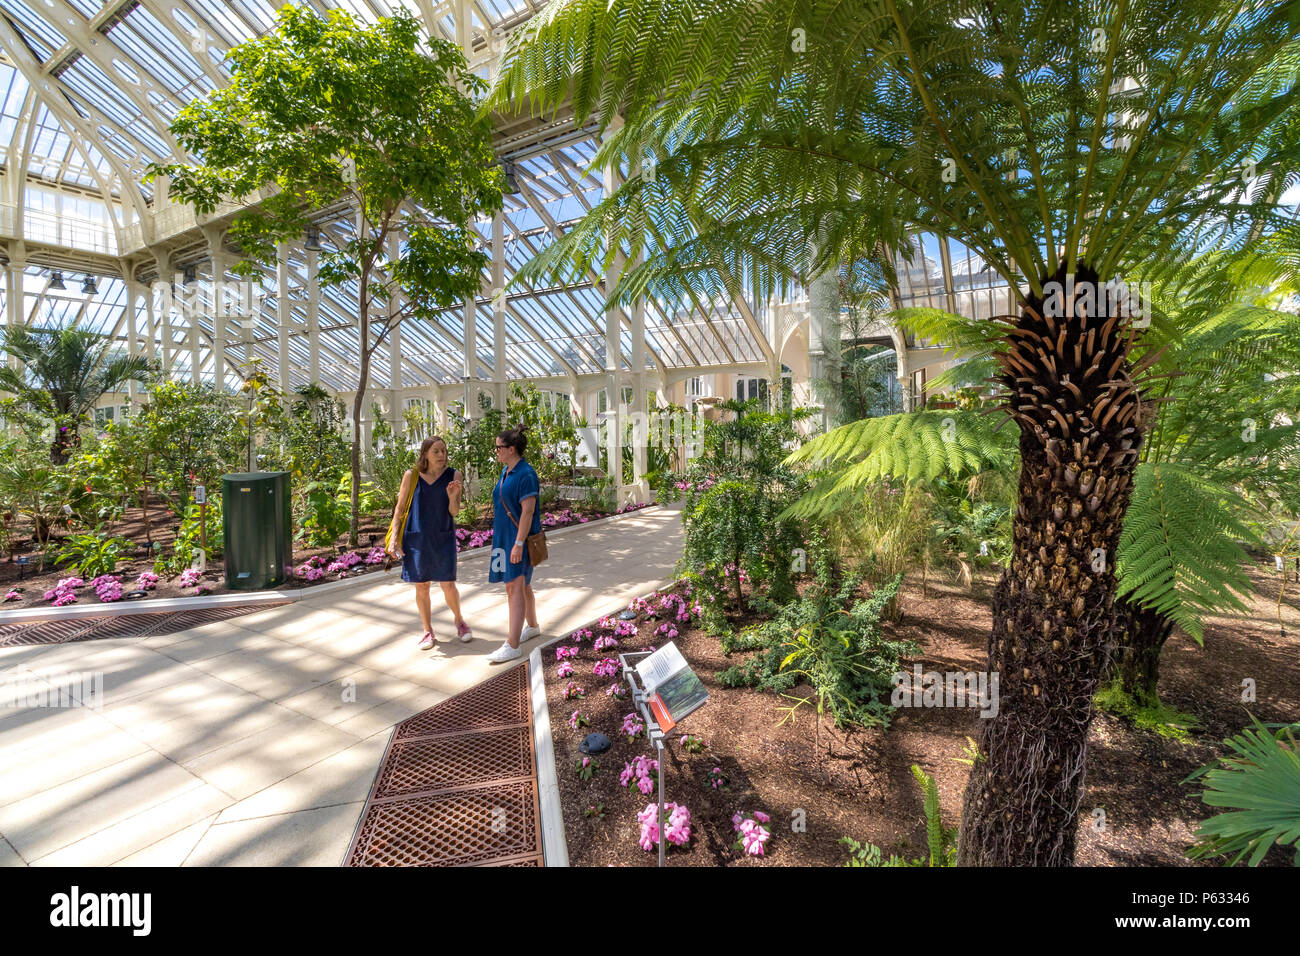 Two ladies stand talking at Kew in the newly restored Temperate House at Kew Gardens ,now reopened to visitors after a 5 year restoration project. - Stock Image